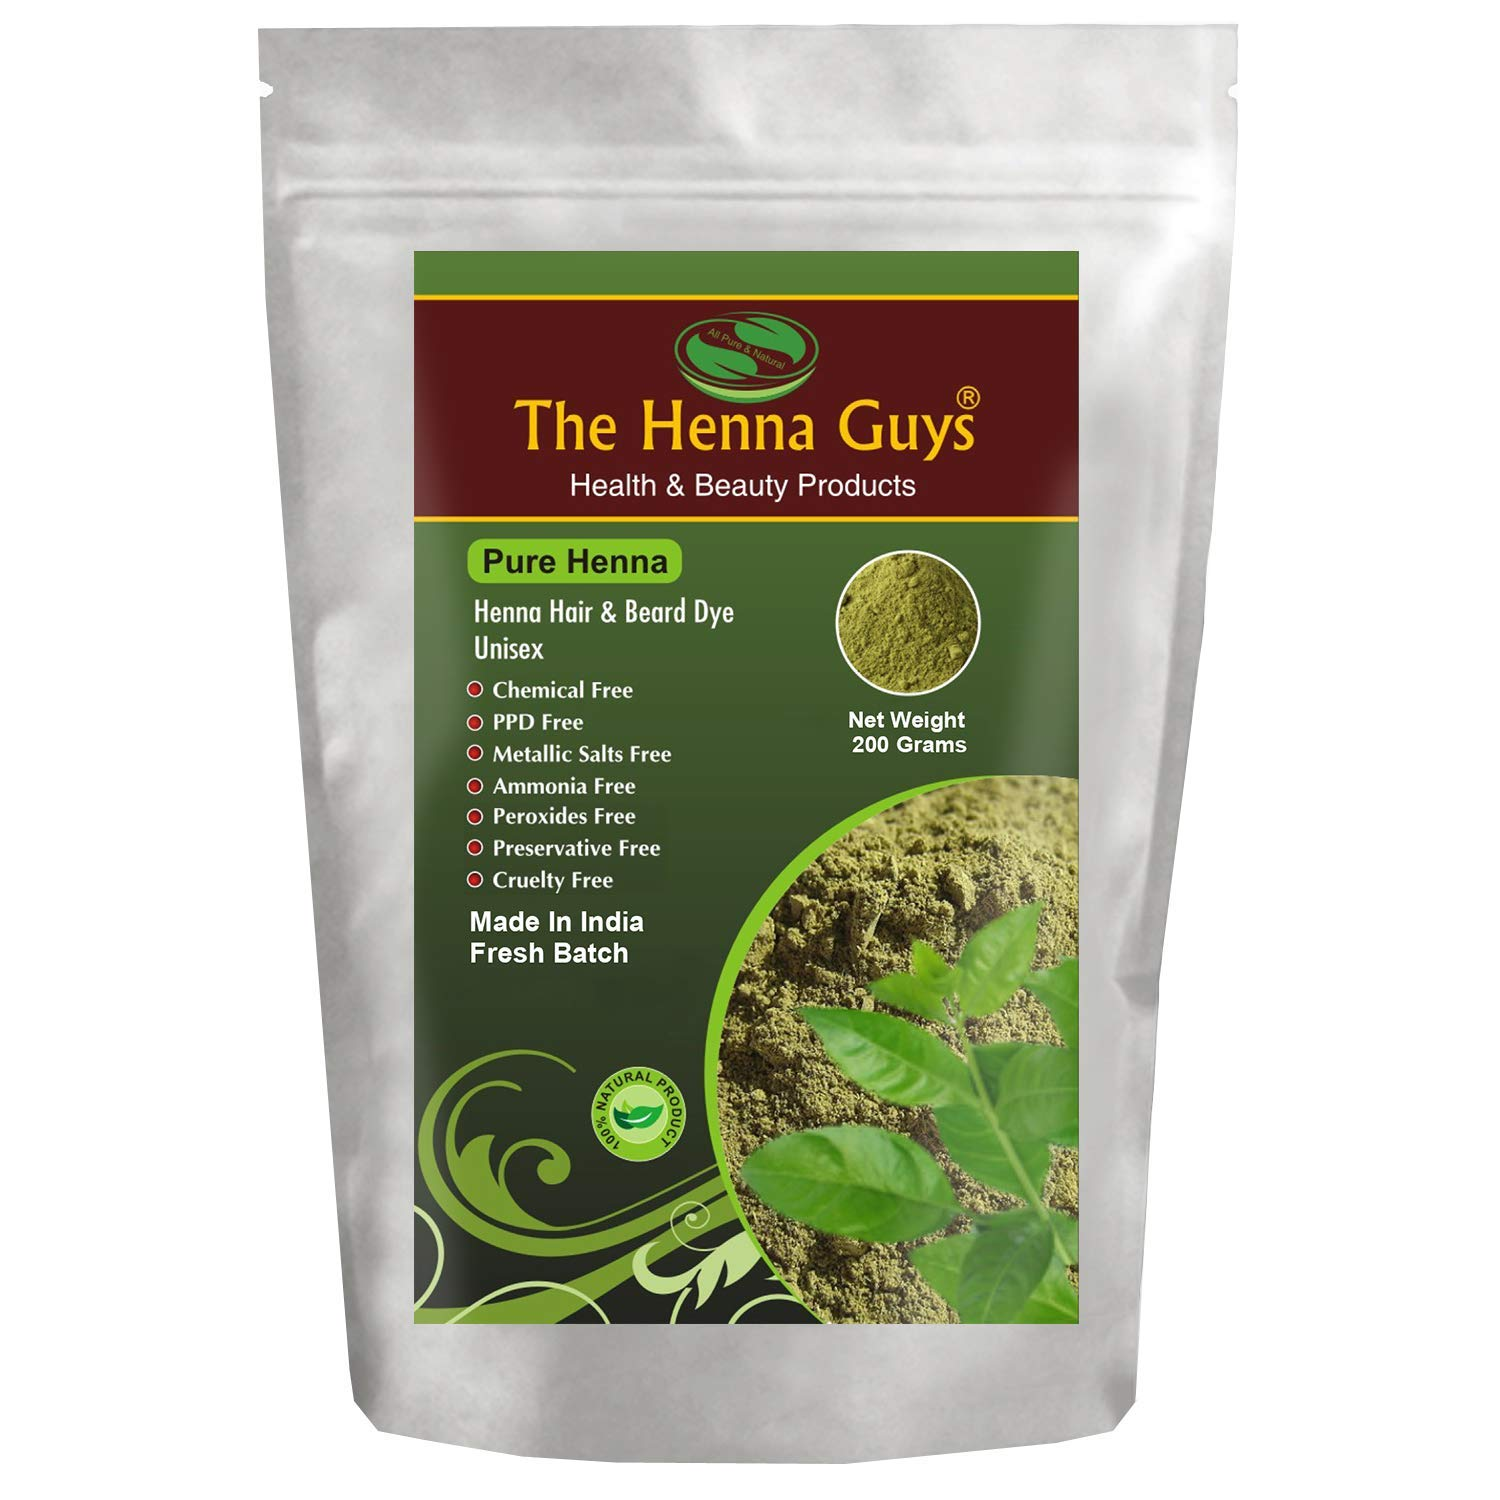 The Henna Guys 100% Pure and Natural Henna Powder for Hair Dye/Color, 200g by The Henna Guys